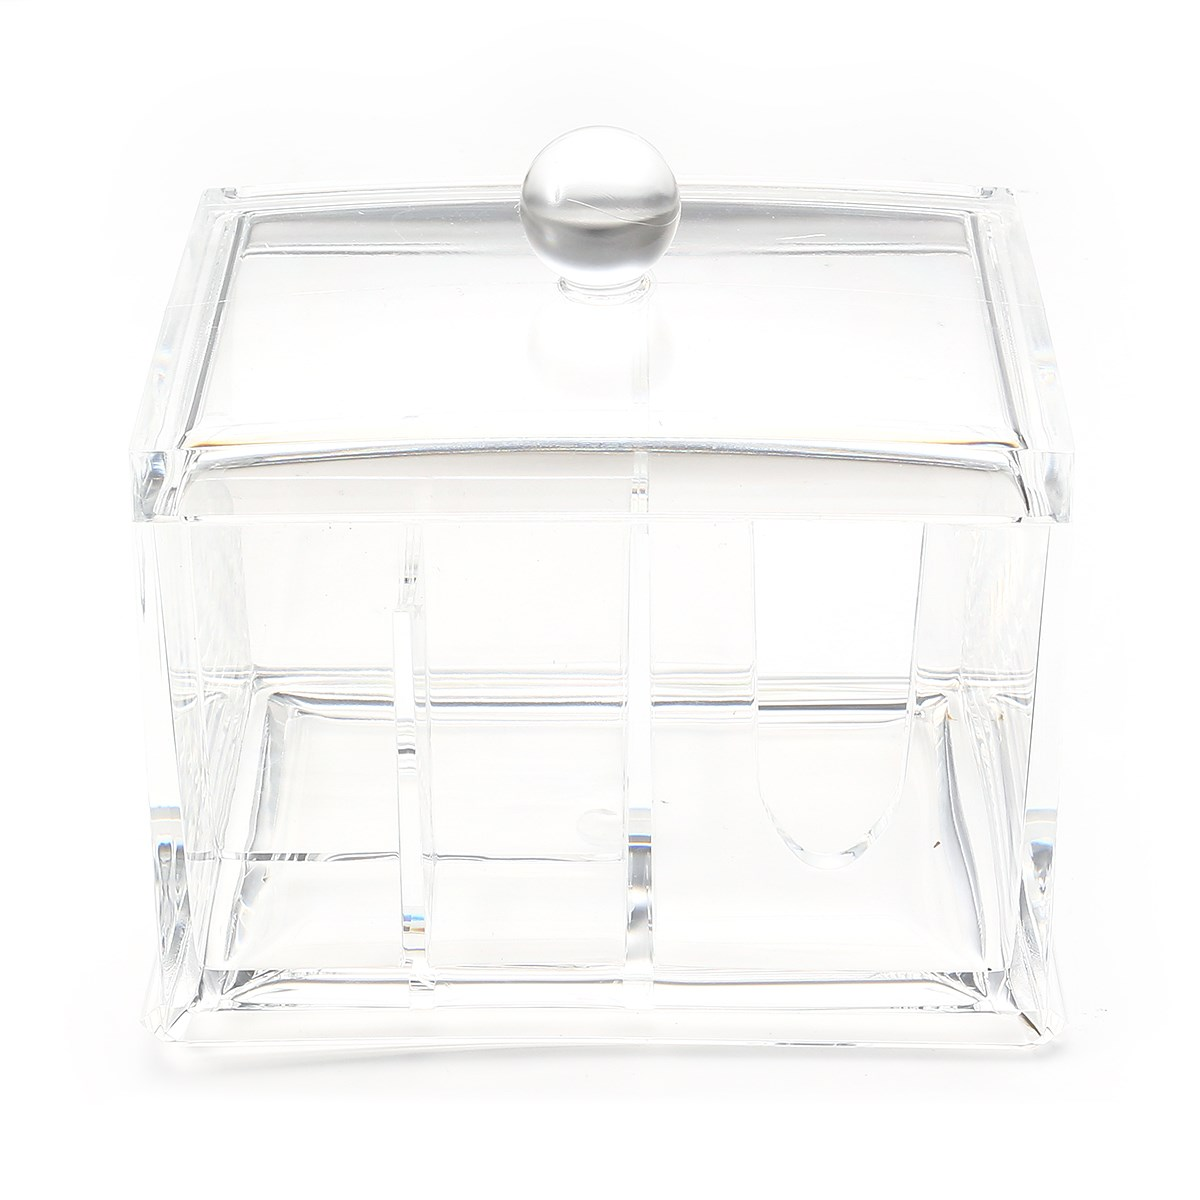 Aliexpress.com : Buy Clear Acrylic Cosmetics Organizer Box Nail Polish  Lipstick Makeup Cotton Pad Storage Boxes Swabs Stick Q tip Holder With  Cover from ...